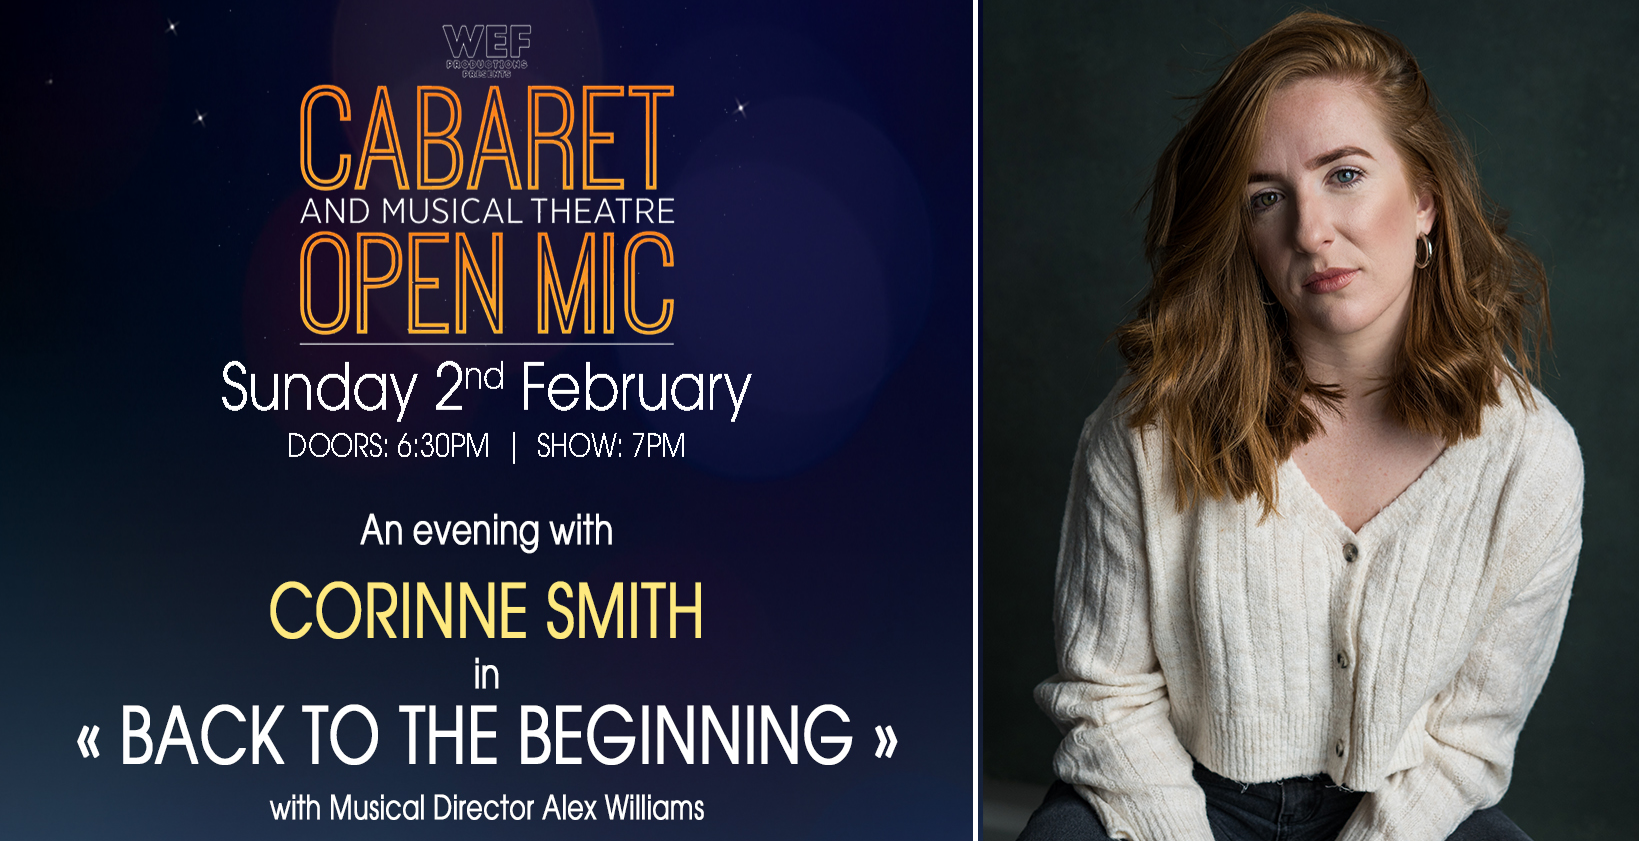 CABARET & MUSICAL THEATRE CONCERT & OPEN MIC with CORINNE SMITH